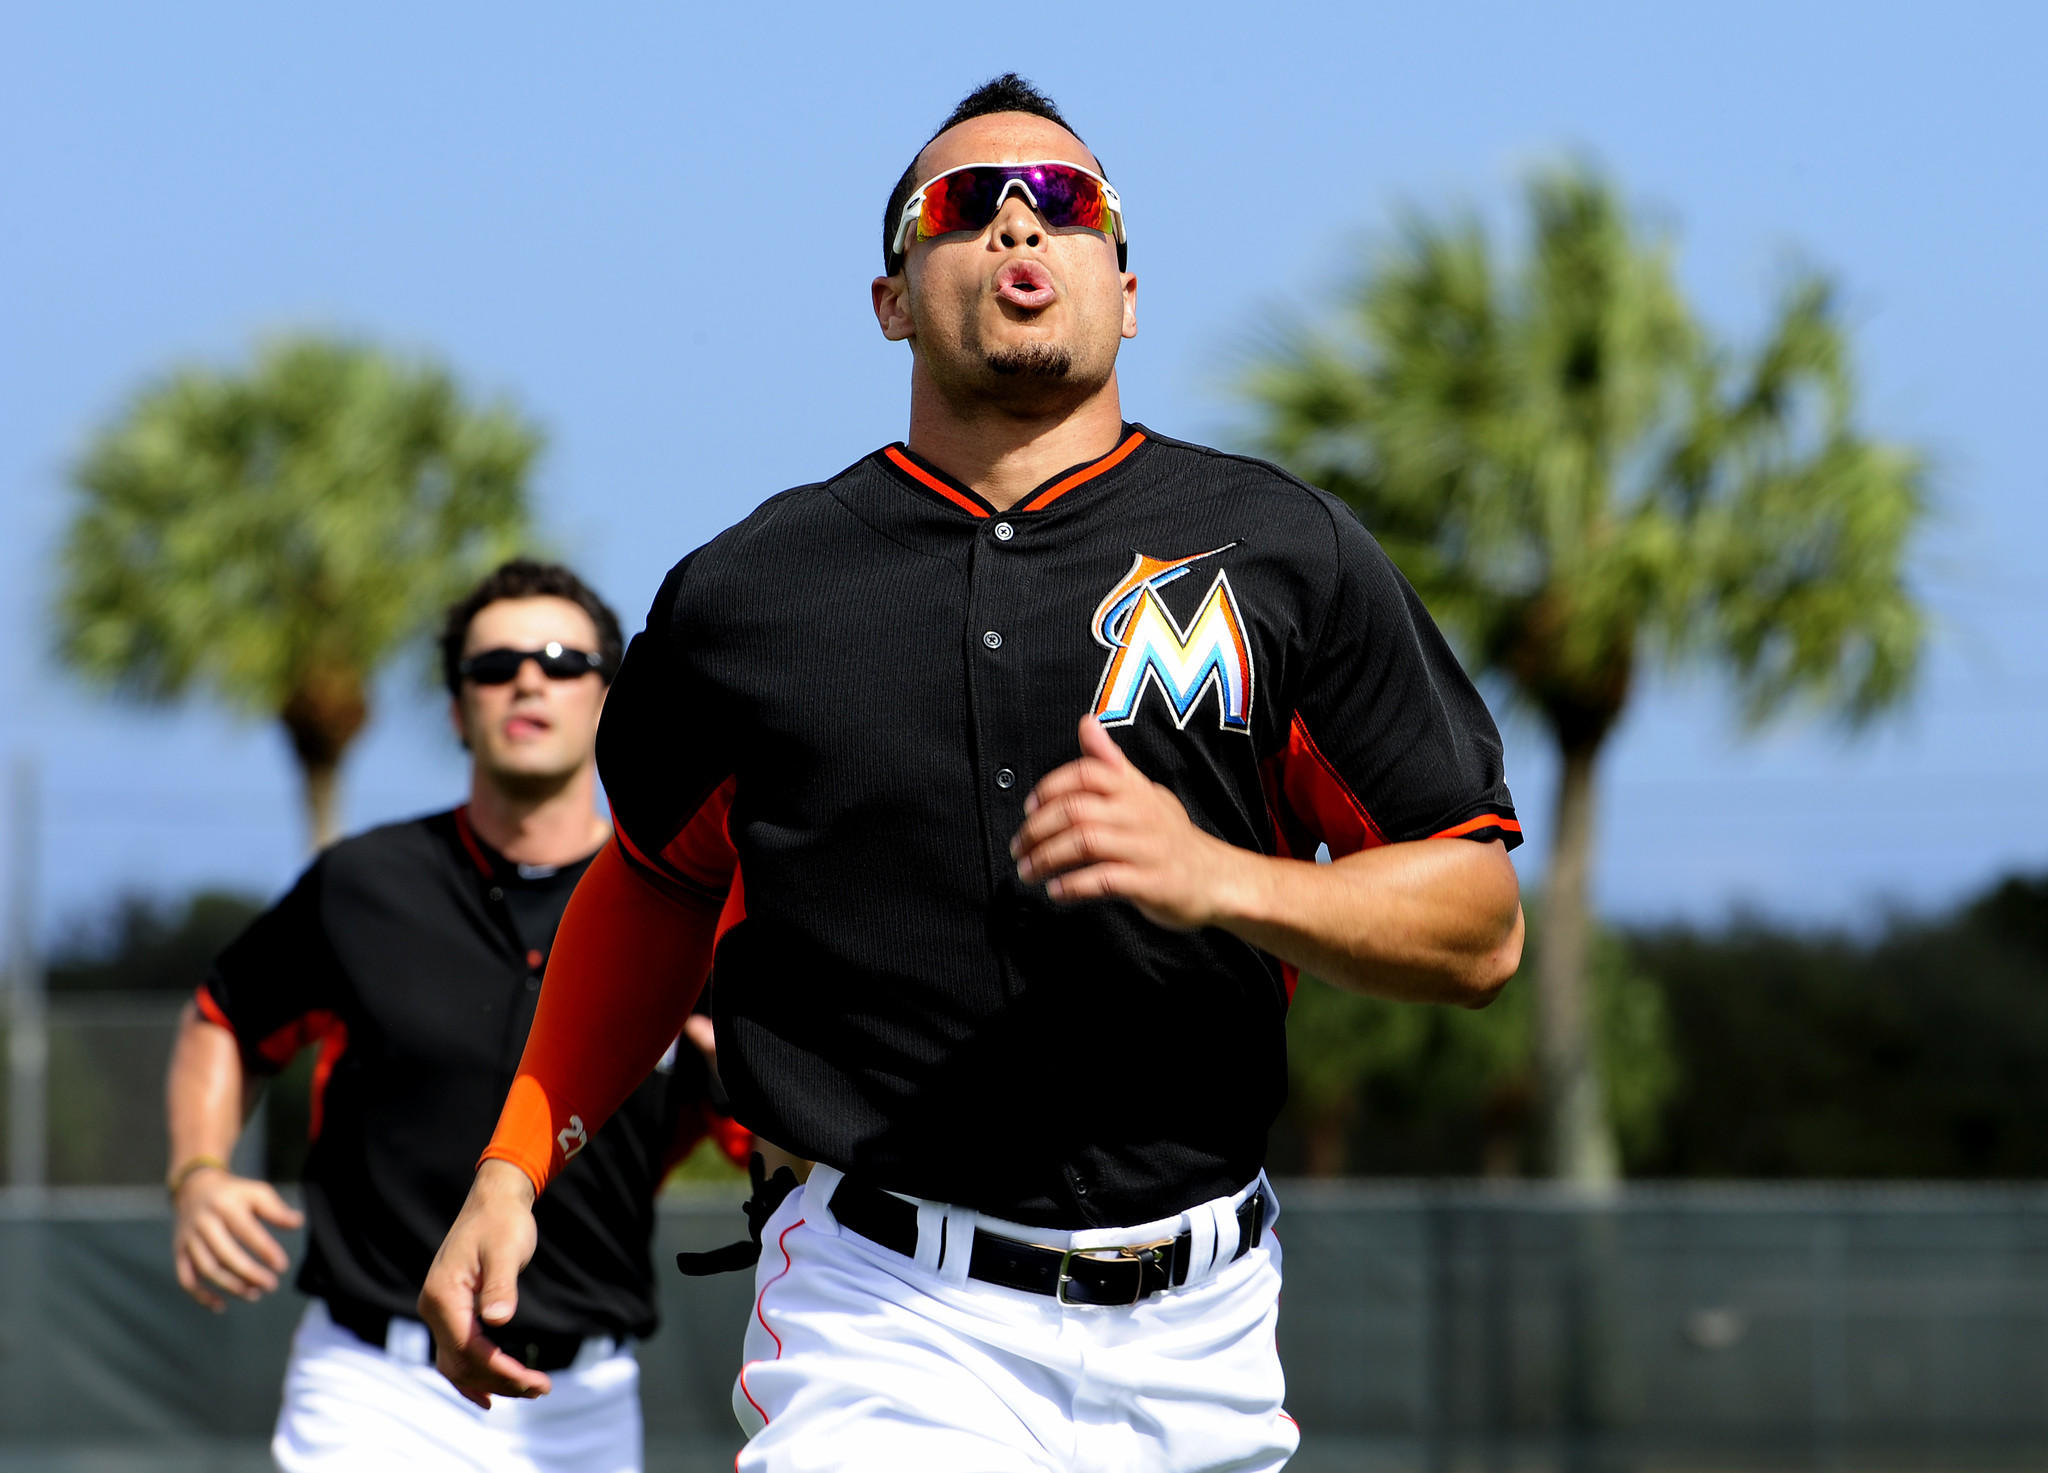 Giancarlo Stanton has a more than adequate baseball facility for offseason workouts now that his alma mater, Notre Dame High School in Sherman Oaks, Calif., has built a state-of-the-art facility.